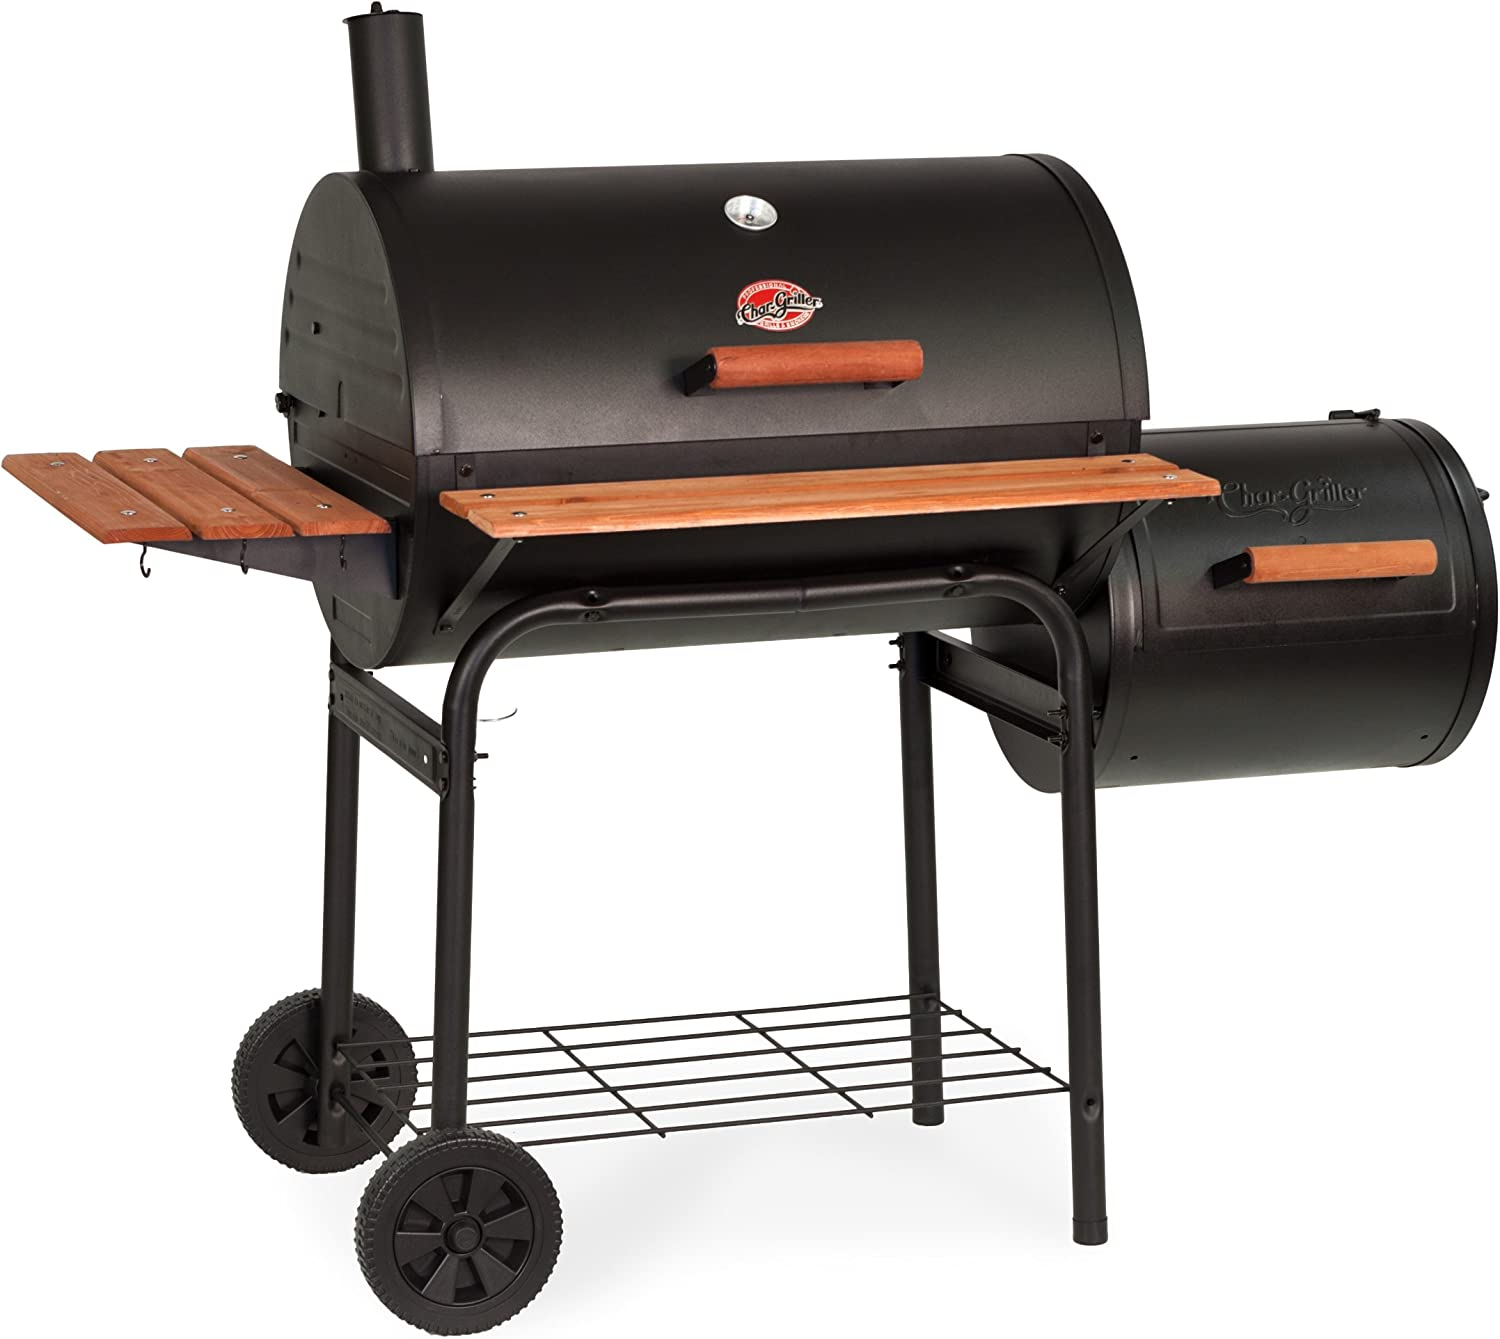 Best Engineered Smoker: Char-Griller E1224 Charcoal Grill with Side Fire Box, Black